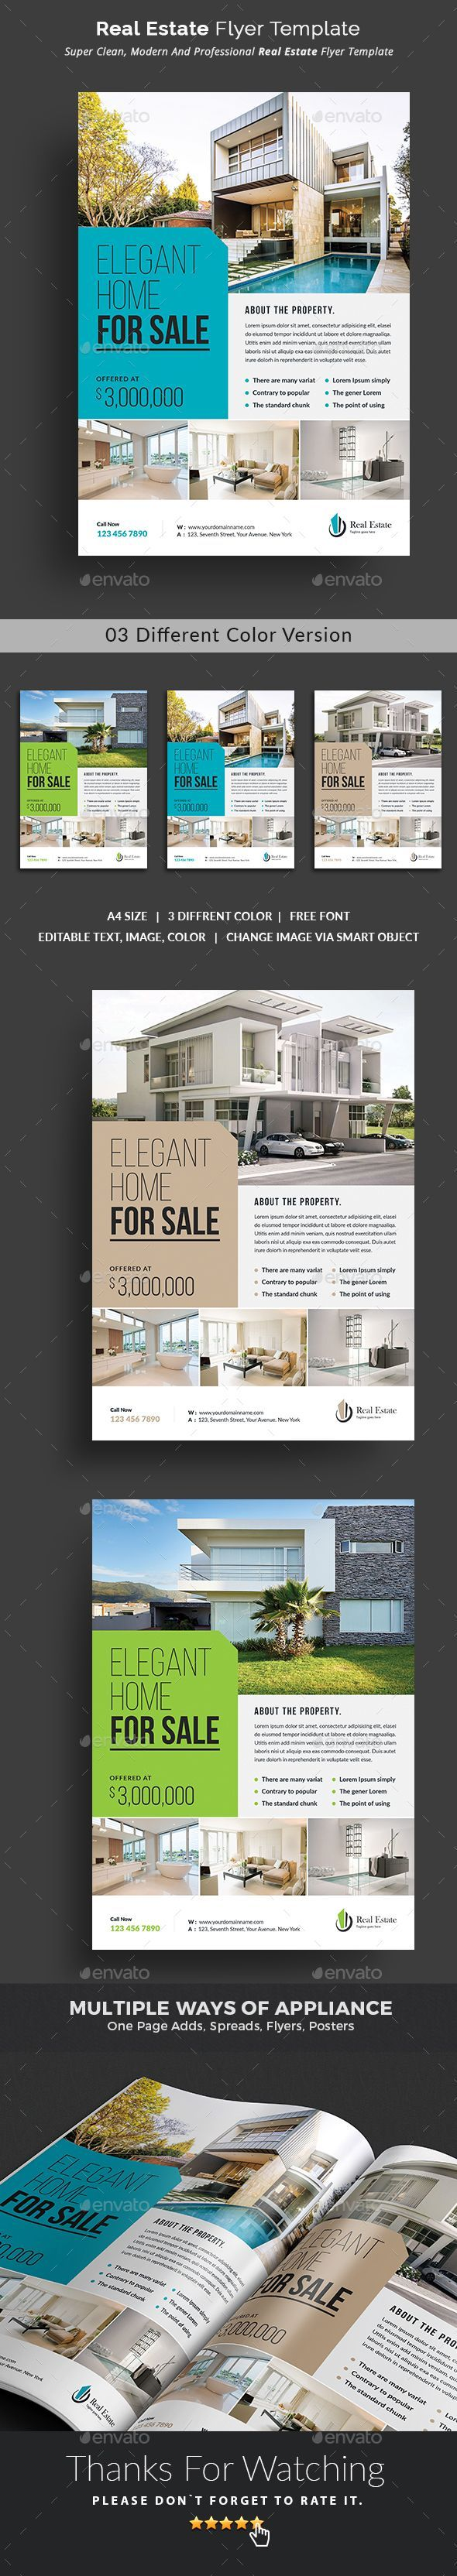 Real Estate Flyer | Real estate flyers, Real estate business and ...